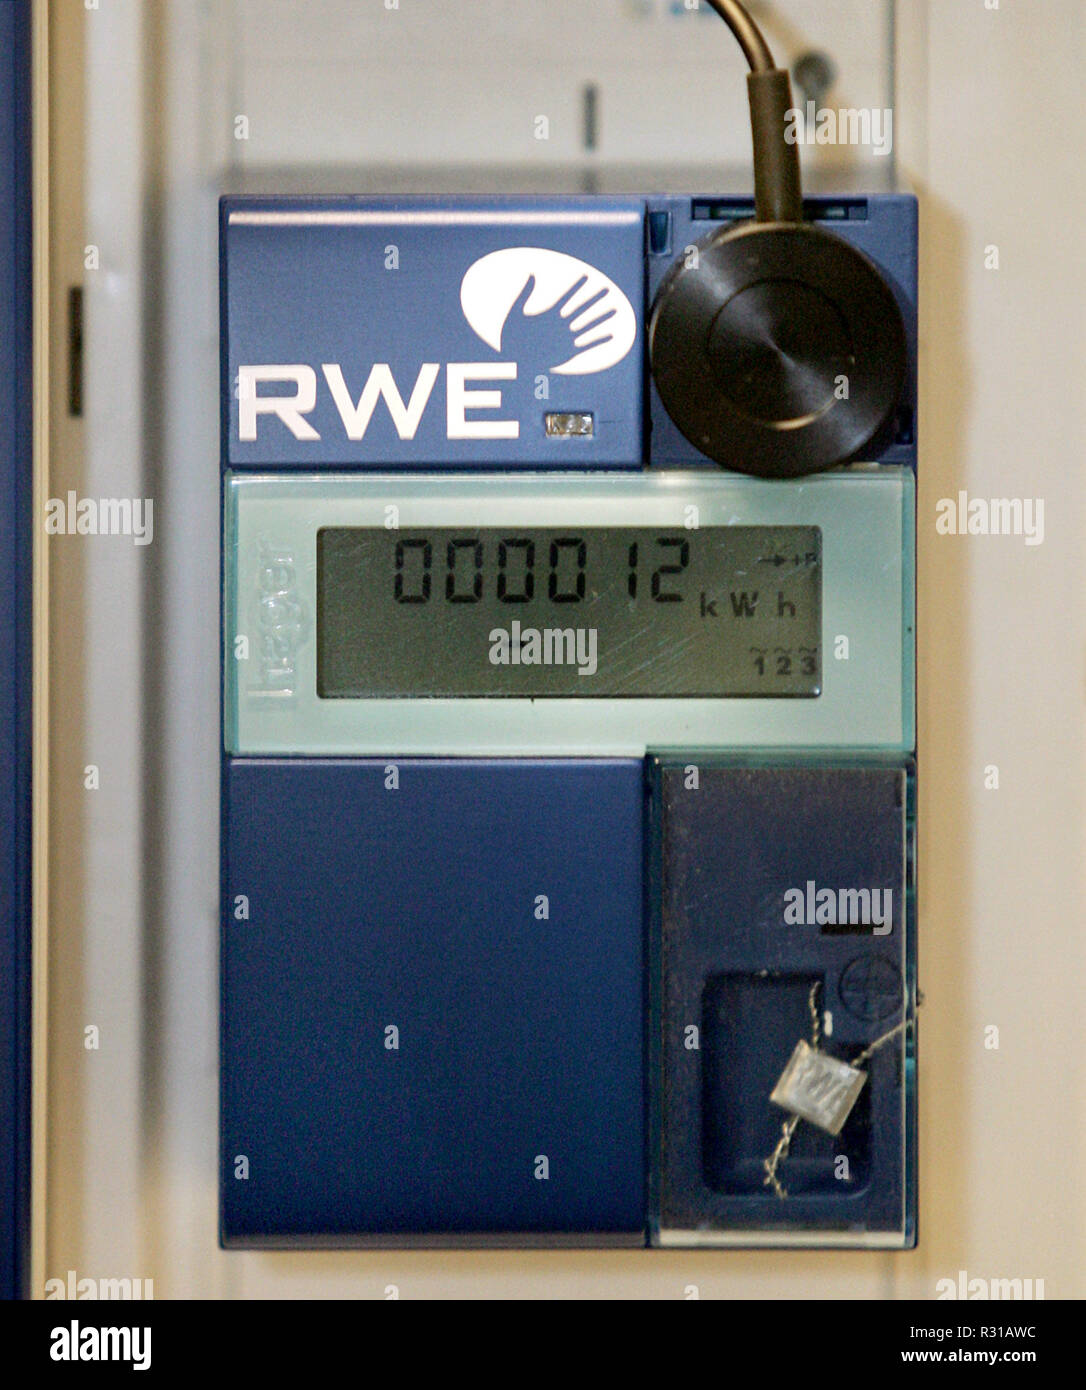 The electronic household payer, called 'Smart Meter' at RWE, was installed on Friday (22.02.2008) at the balance sheet press conference in Essen in an adjoining room. The electronic payer will be tested in Mulheim on its practical suitability. Modern payers can do more than conventional devices. They store considerably more consumption and load data and have communication interfaces via which the data are made accessible to the measuring point operators and customers, who make them remotely readable. Photo: Roland Frankincense dpa +++ (c) dpa - Report +++ | usage worldwide - Stock Image